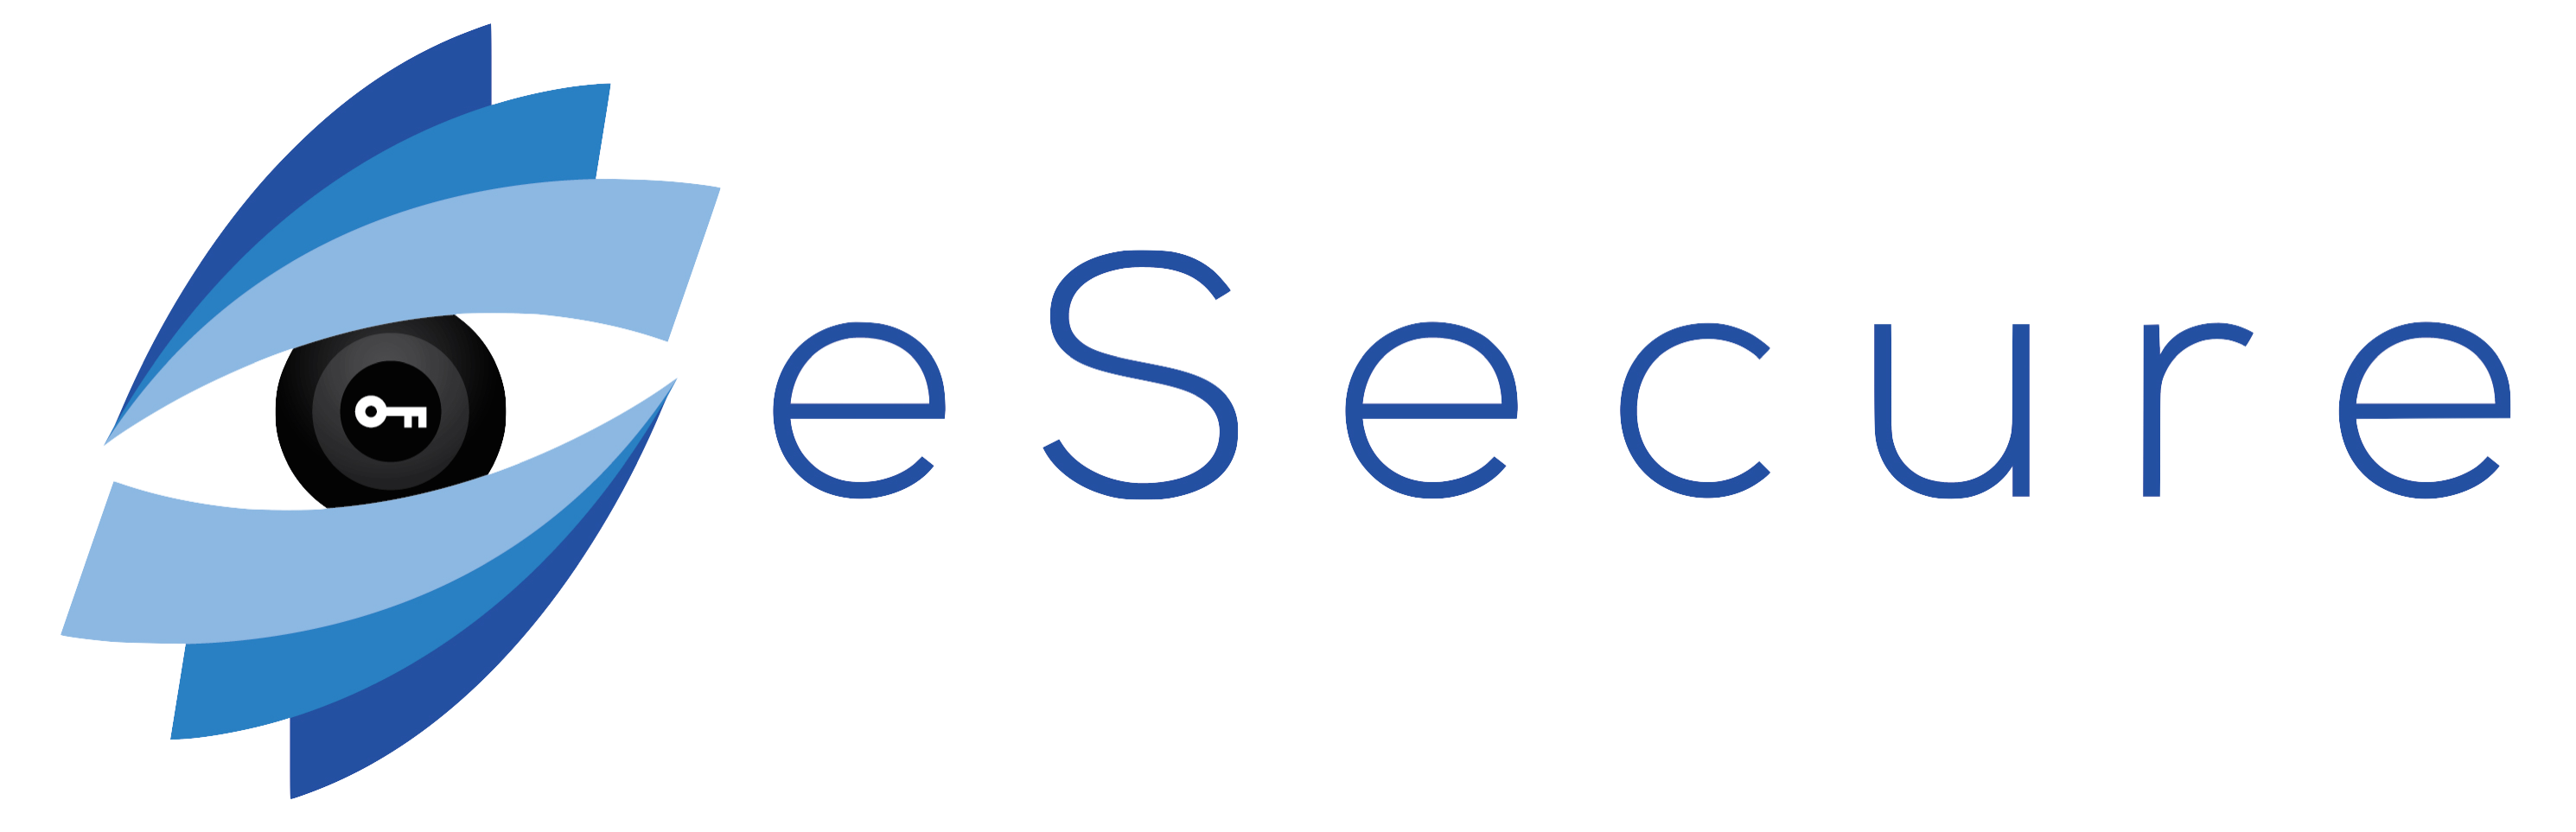 eSecure